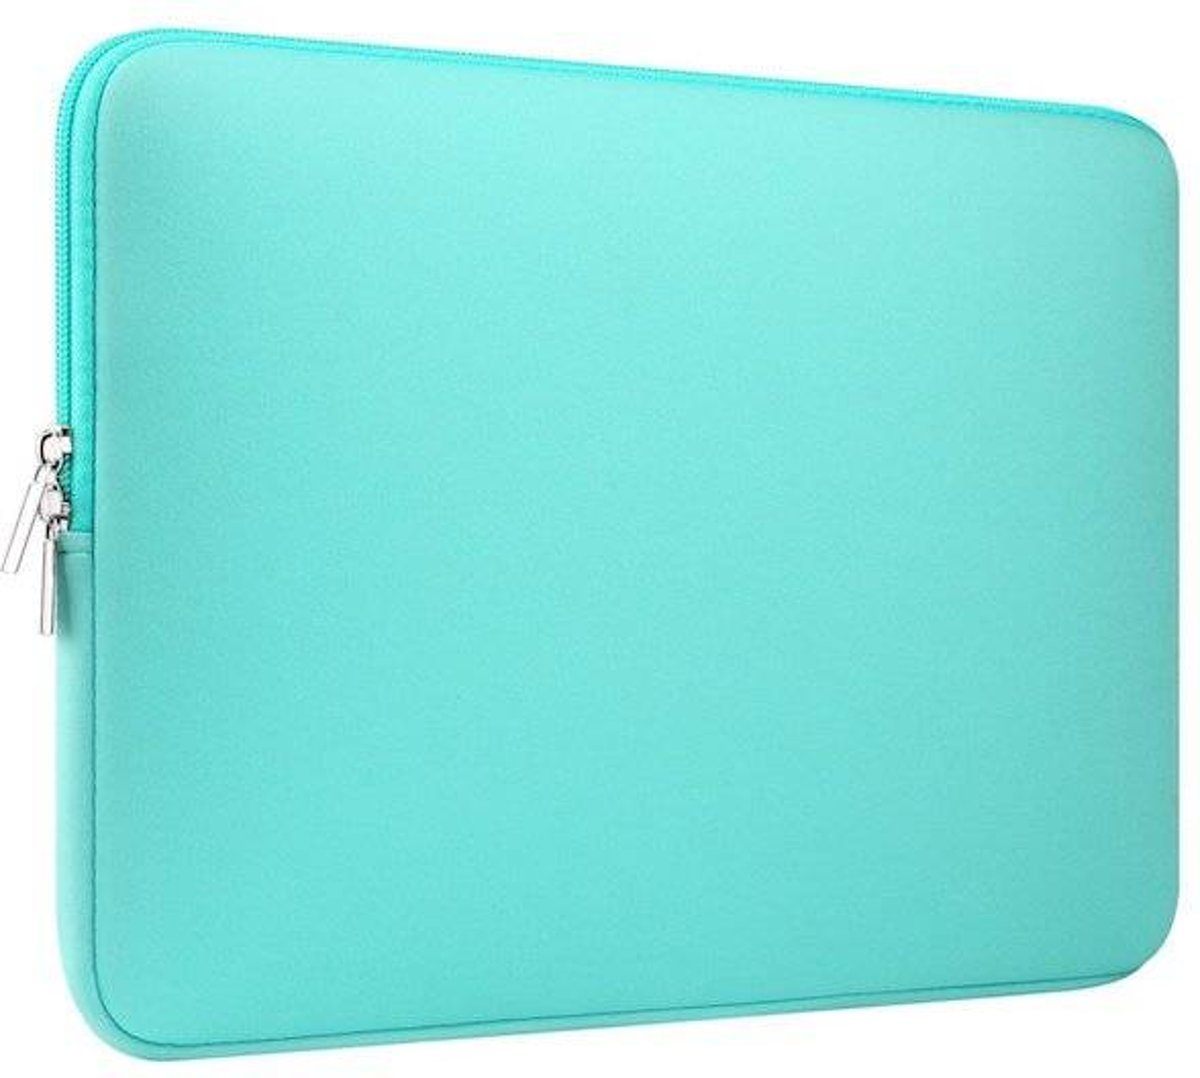 Acer Aspire Sleeve - 14 inch - Turquoise